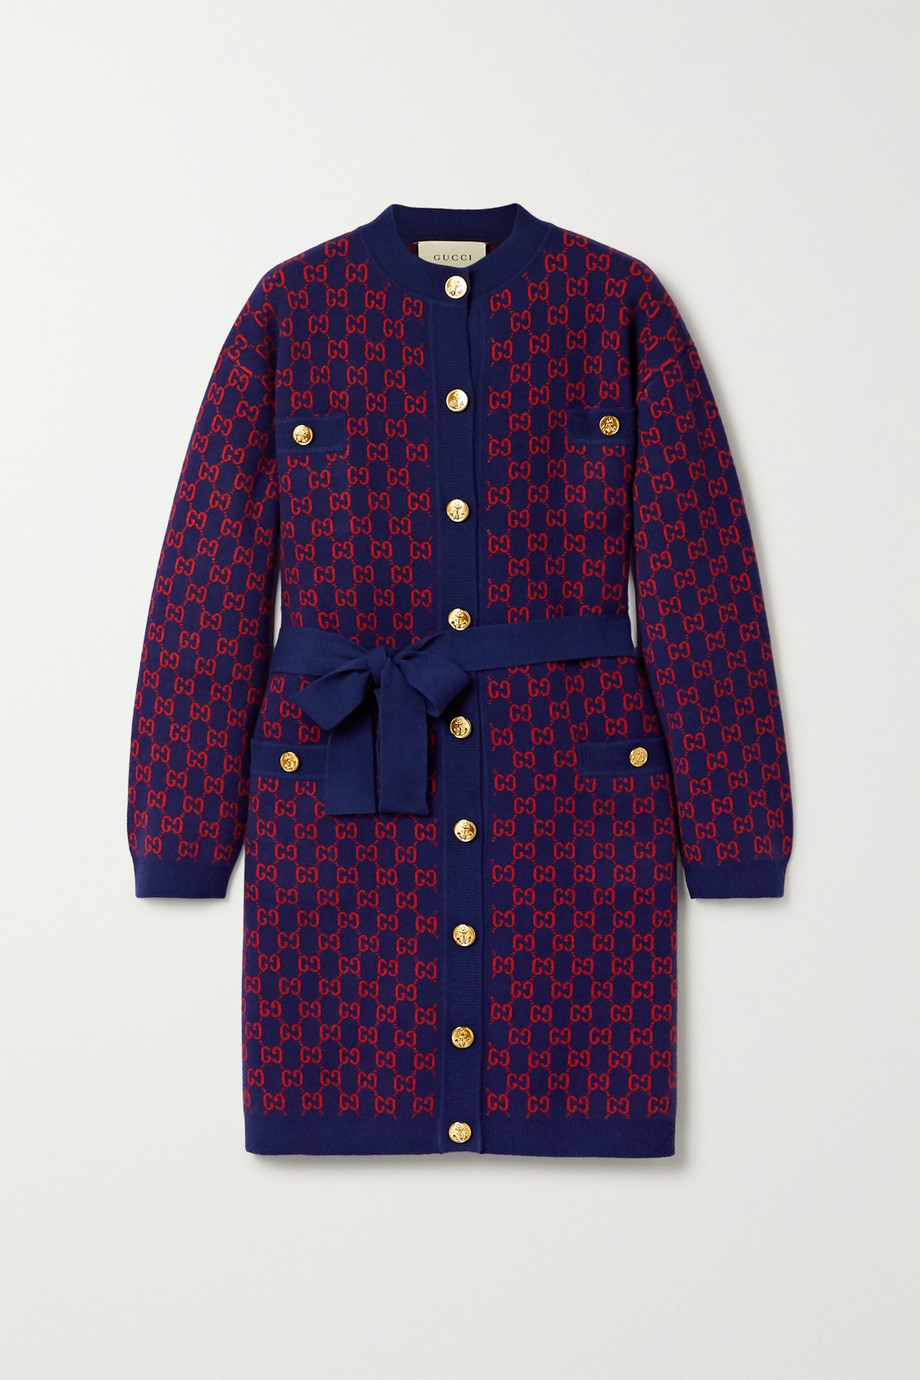 Gucci Belted wool-jacquard cardigan